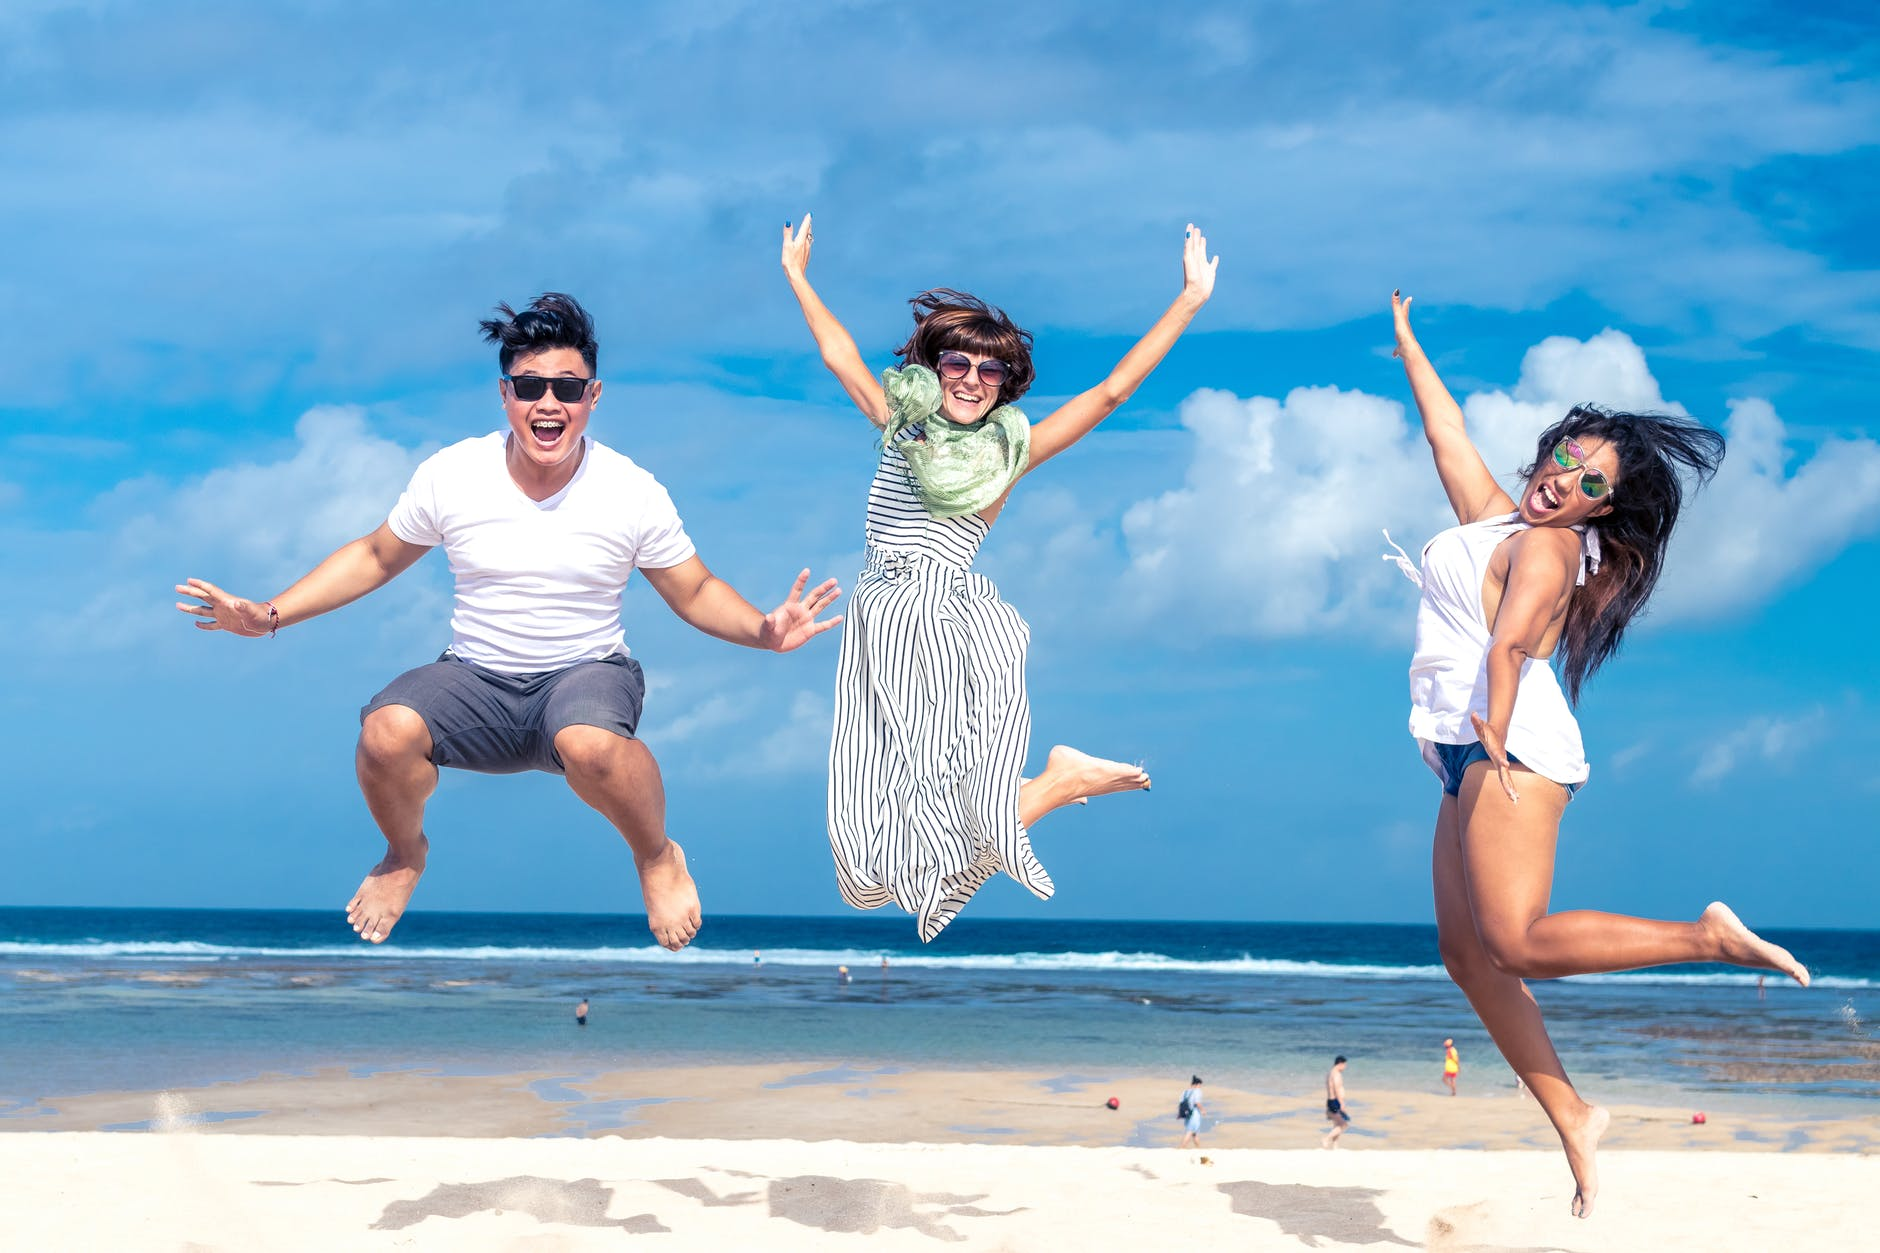 three friends jumping by the shore on the beach